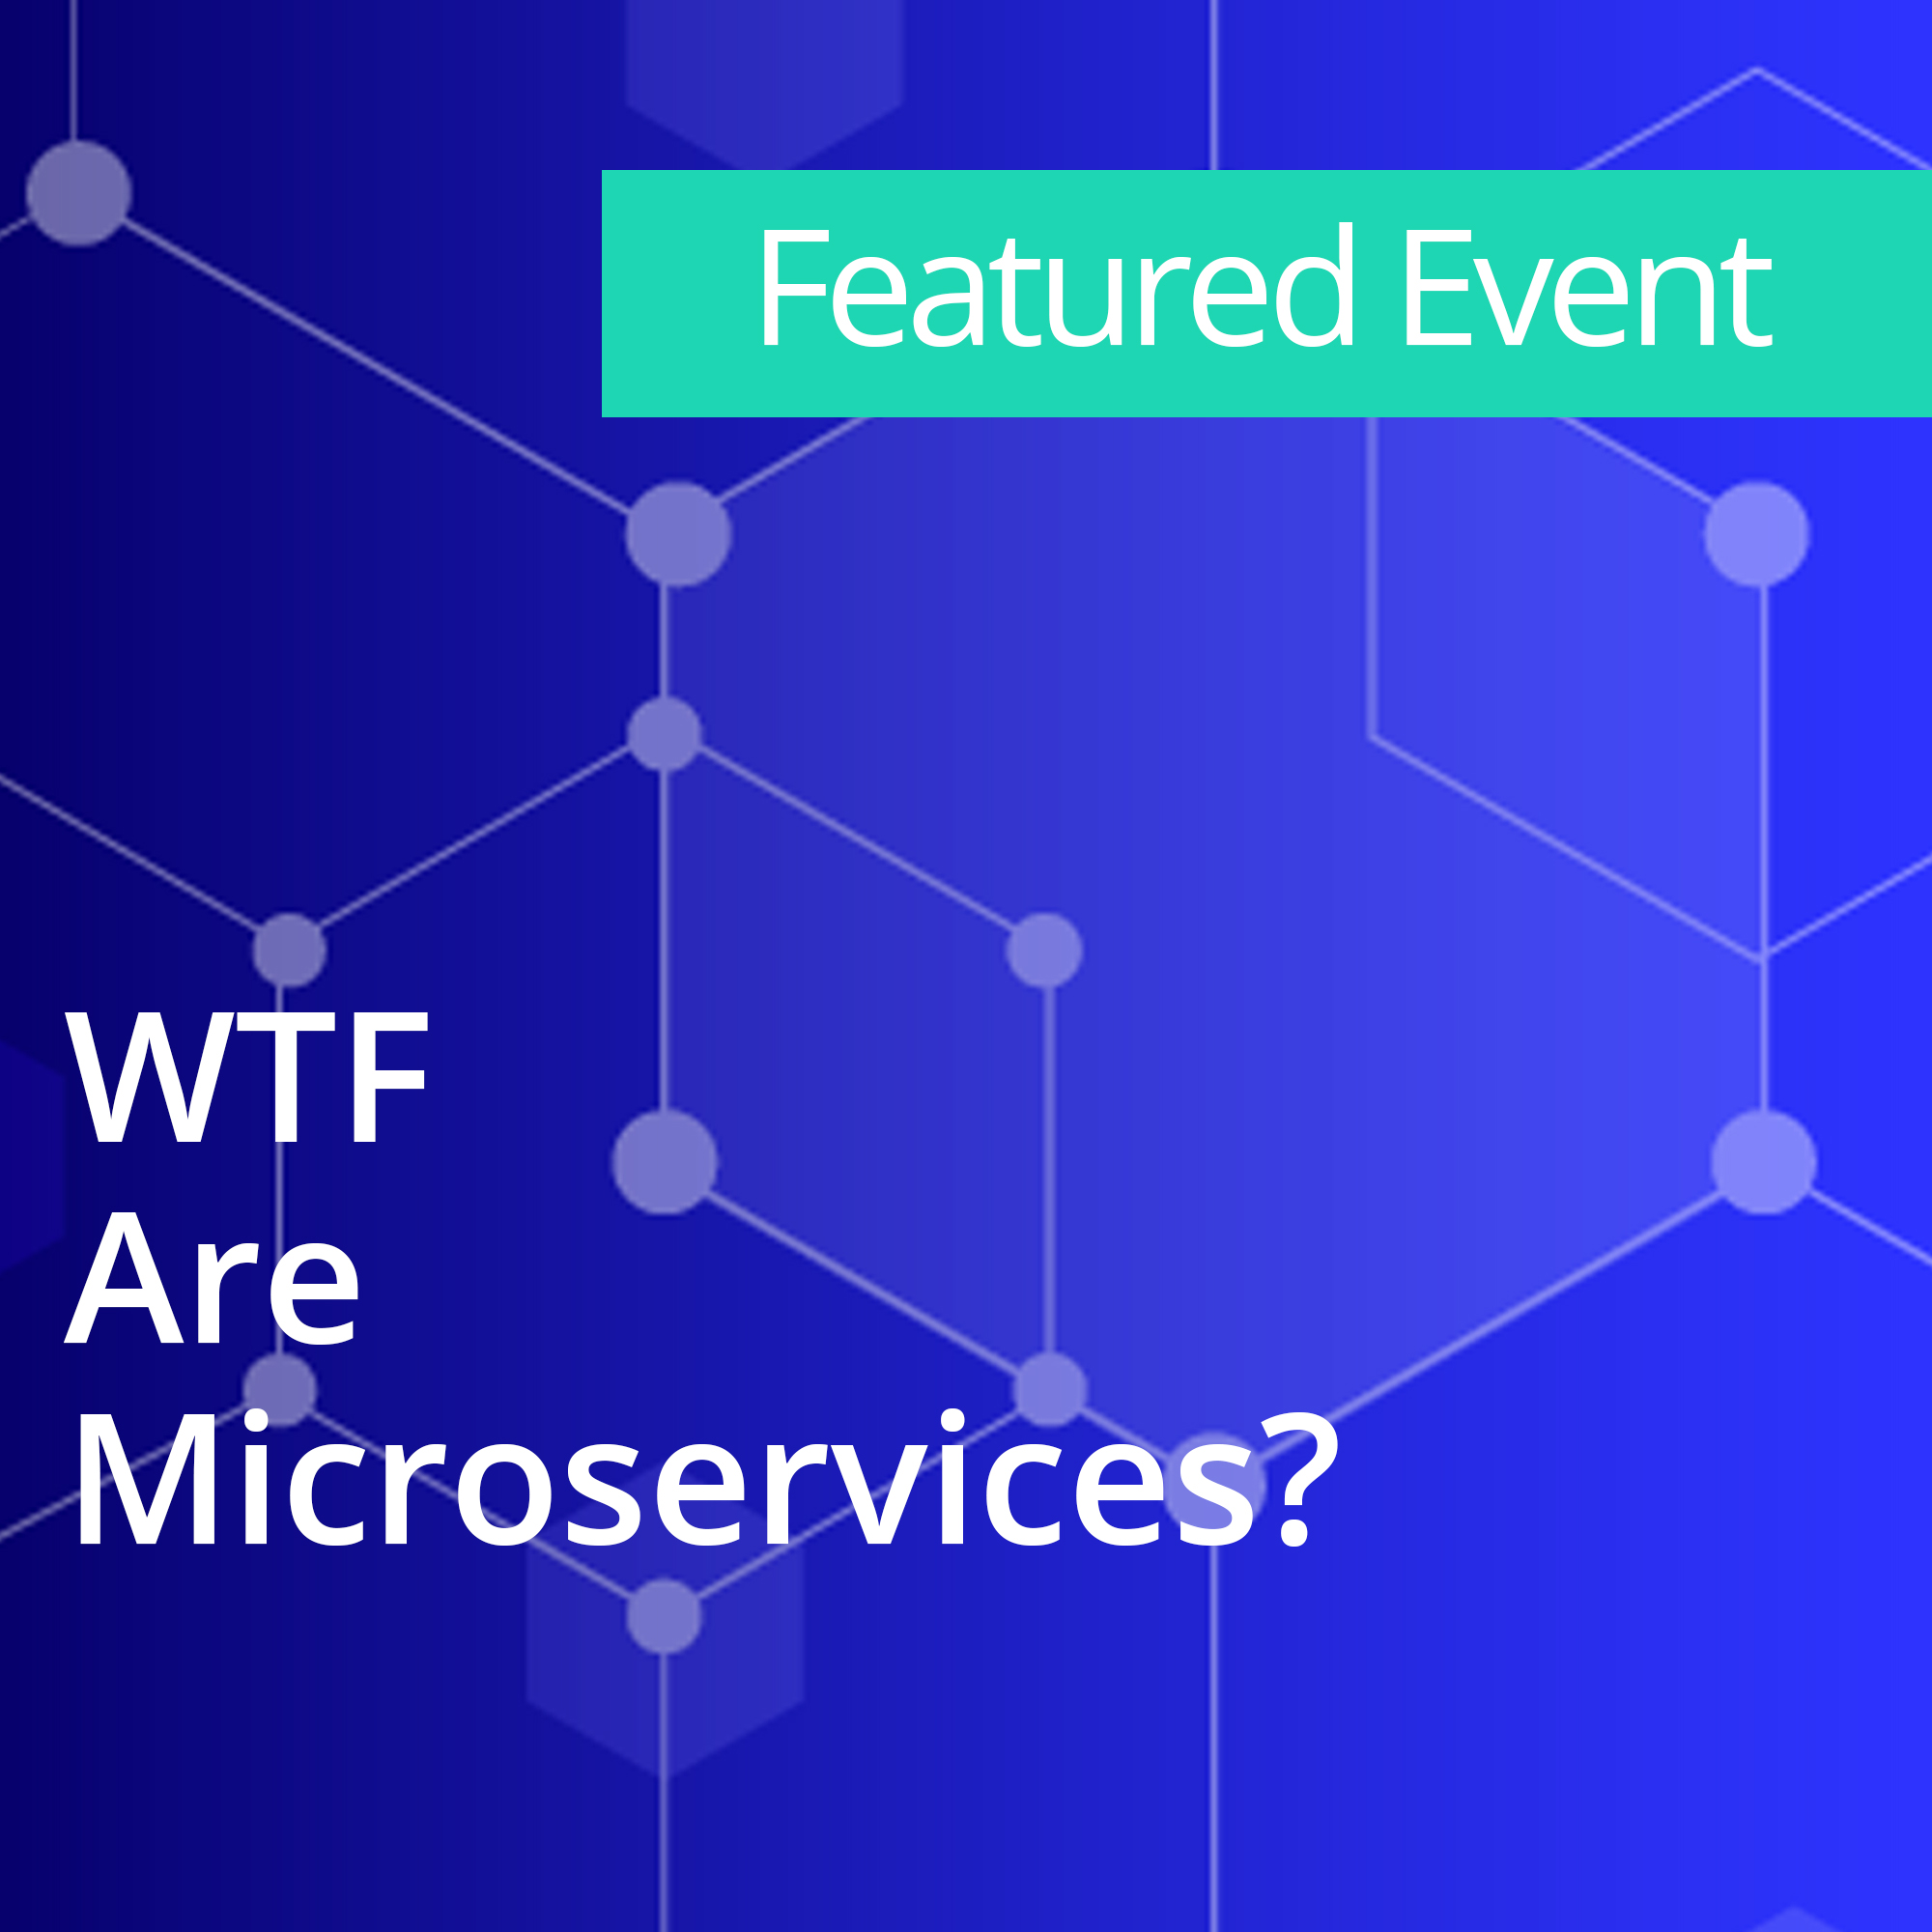 WTF Are Microservices